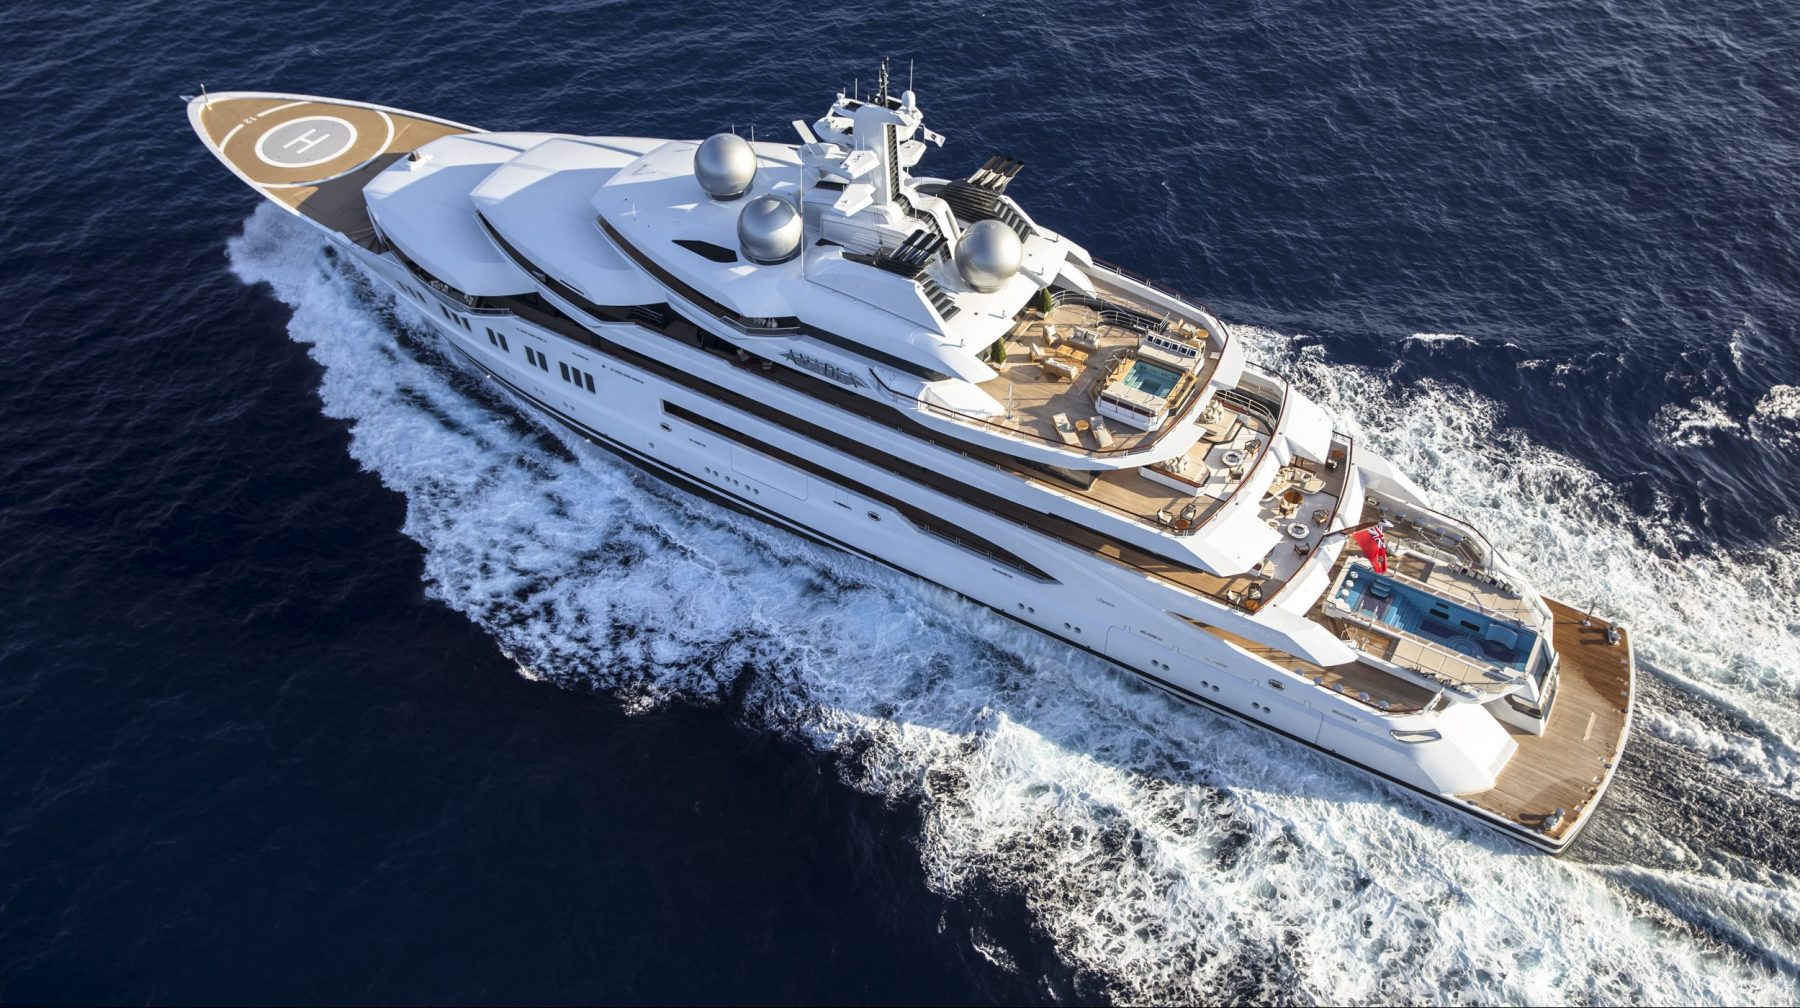 Monaco Yacht Show 2019: The 10 Finest New Superyachts